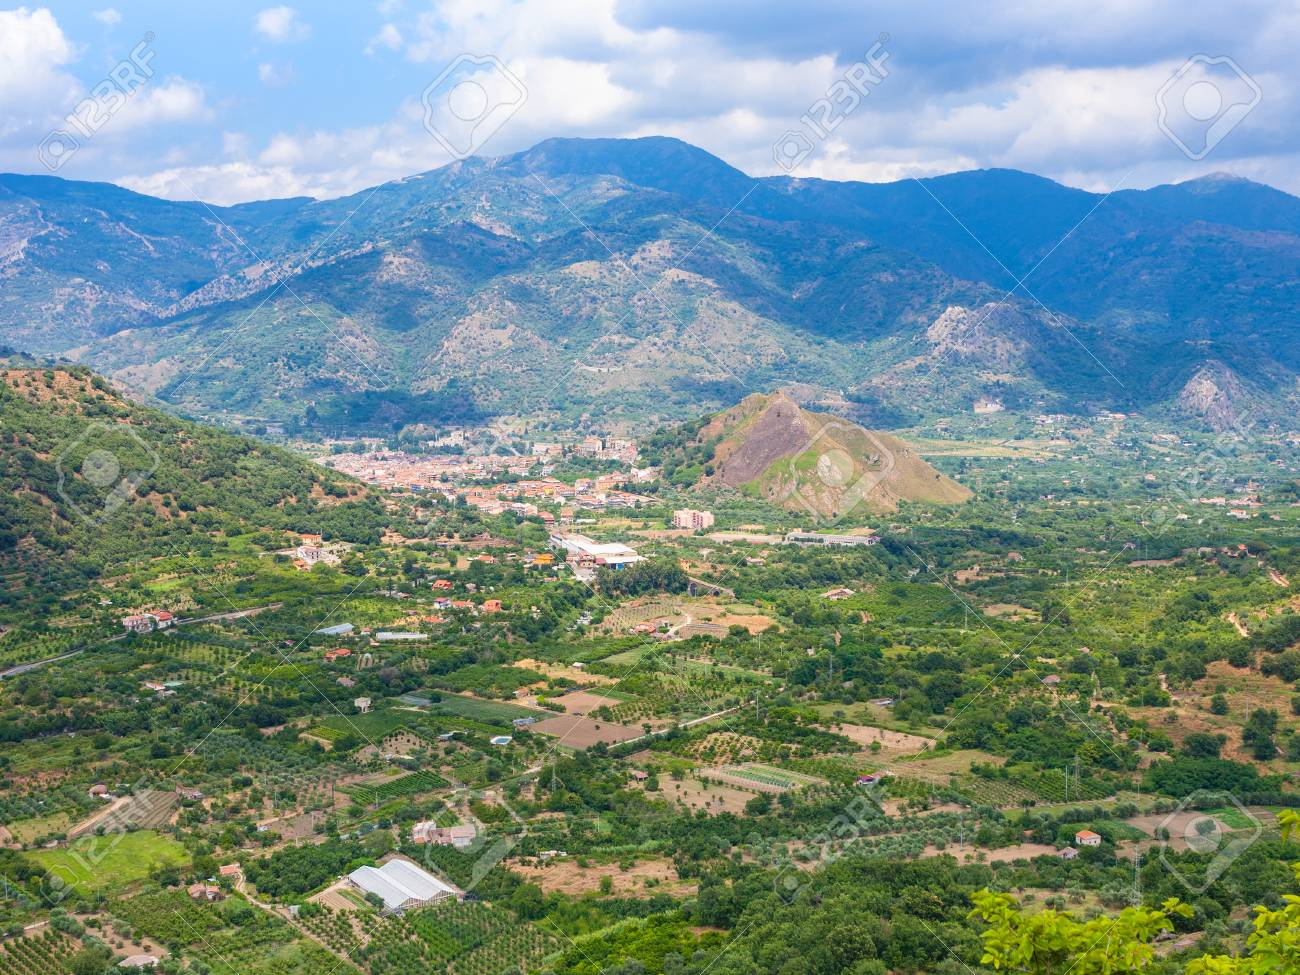 Italy Above View Of Rural Gardens And Francavilla Di Sicilia Stock Photo Picture And Royalty Free Image Image 74224532